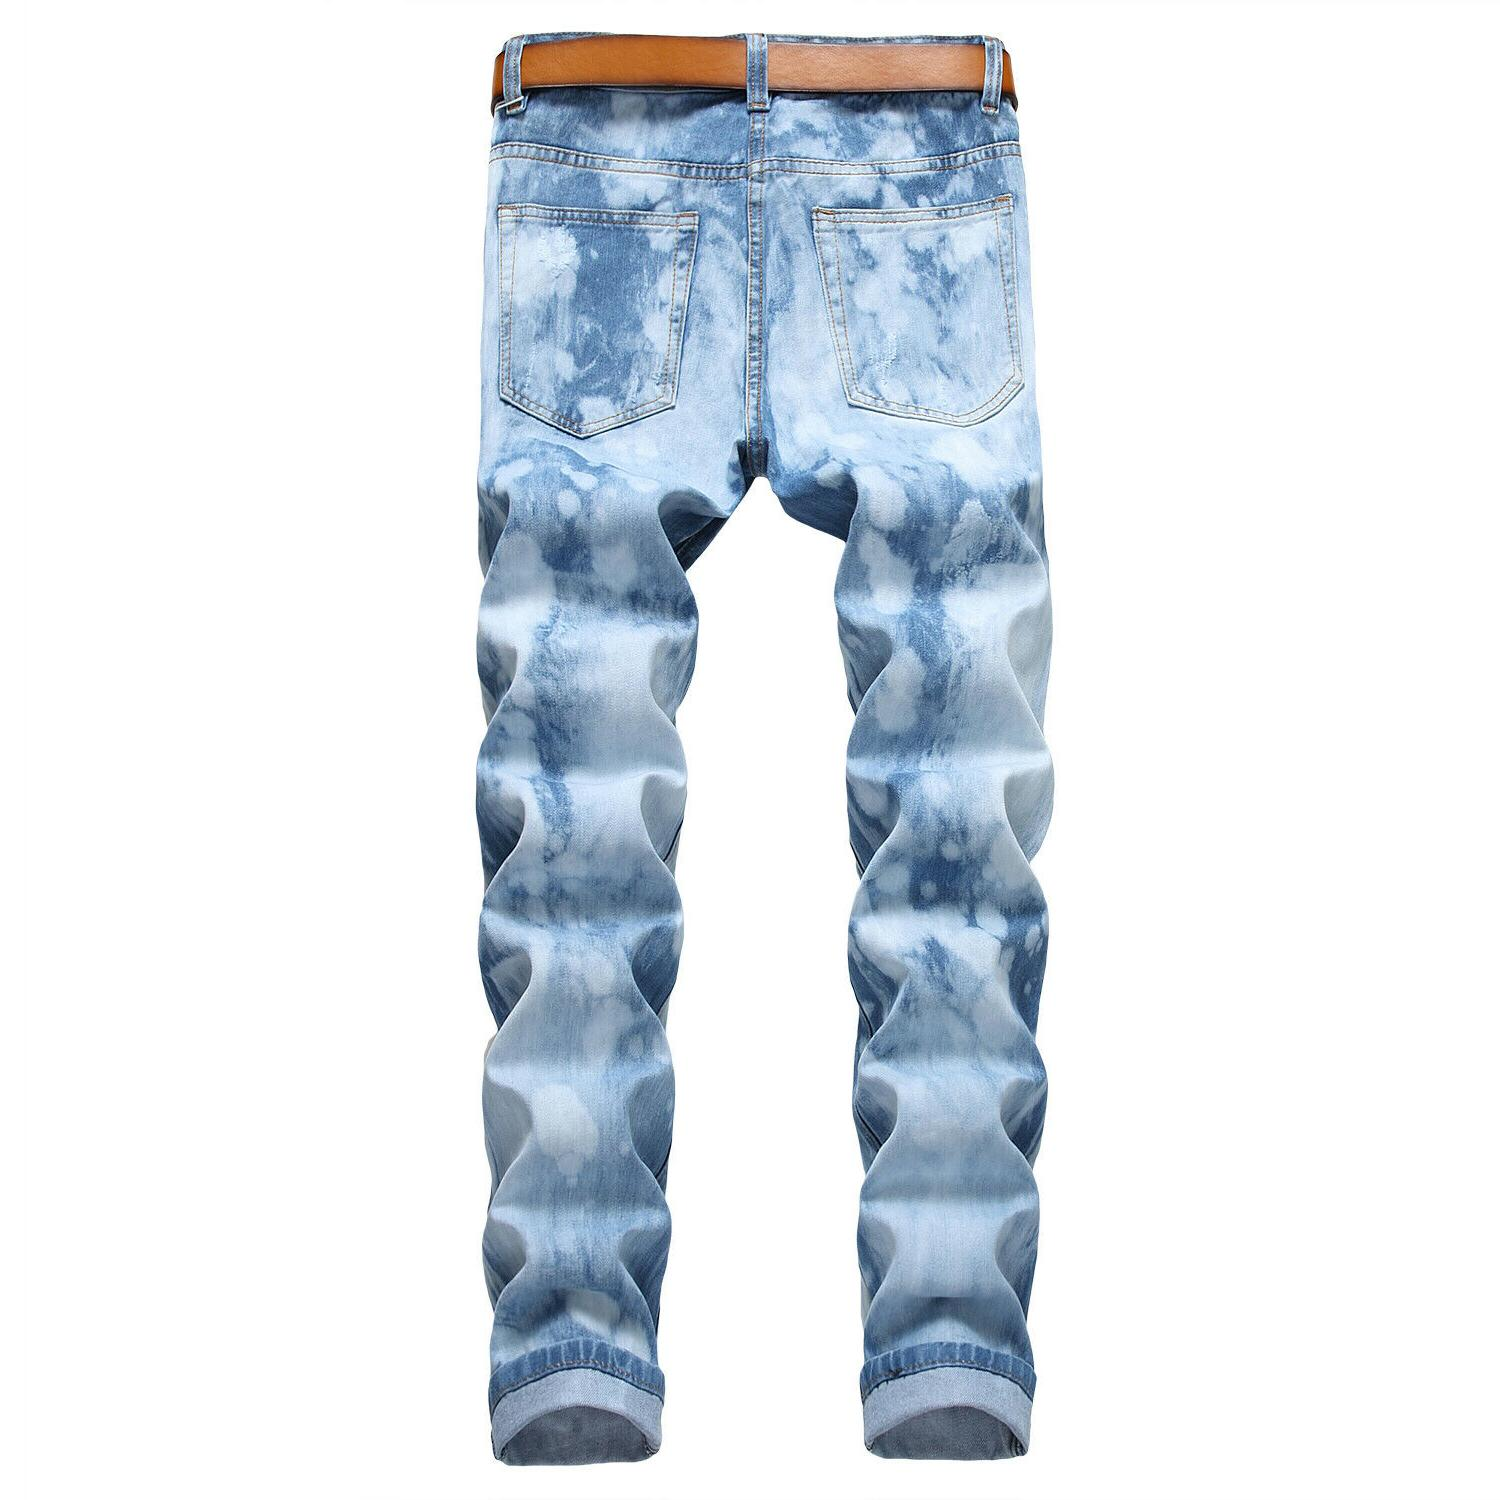 Men's Biker Ripped Jeans Bleached Distressed Slim Fit Denim